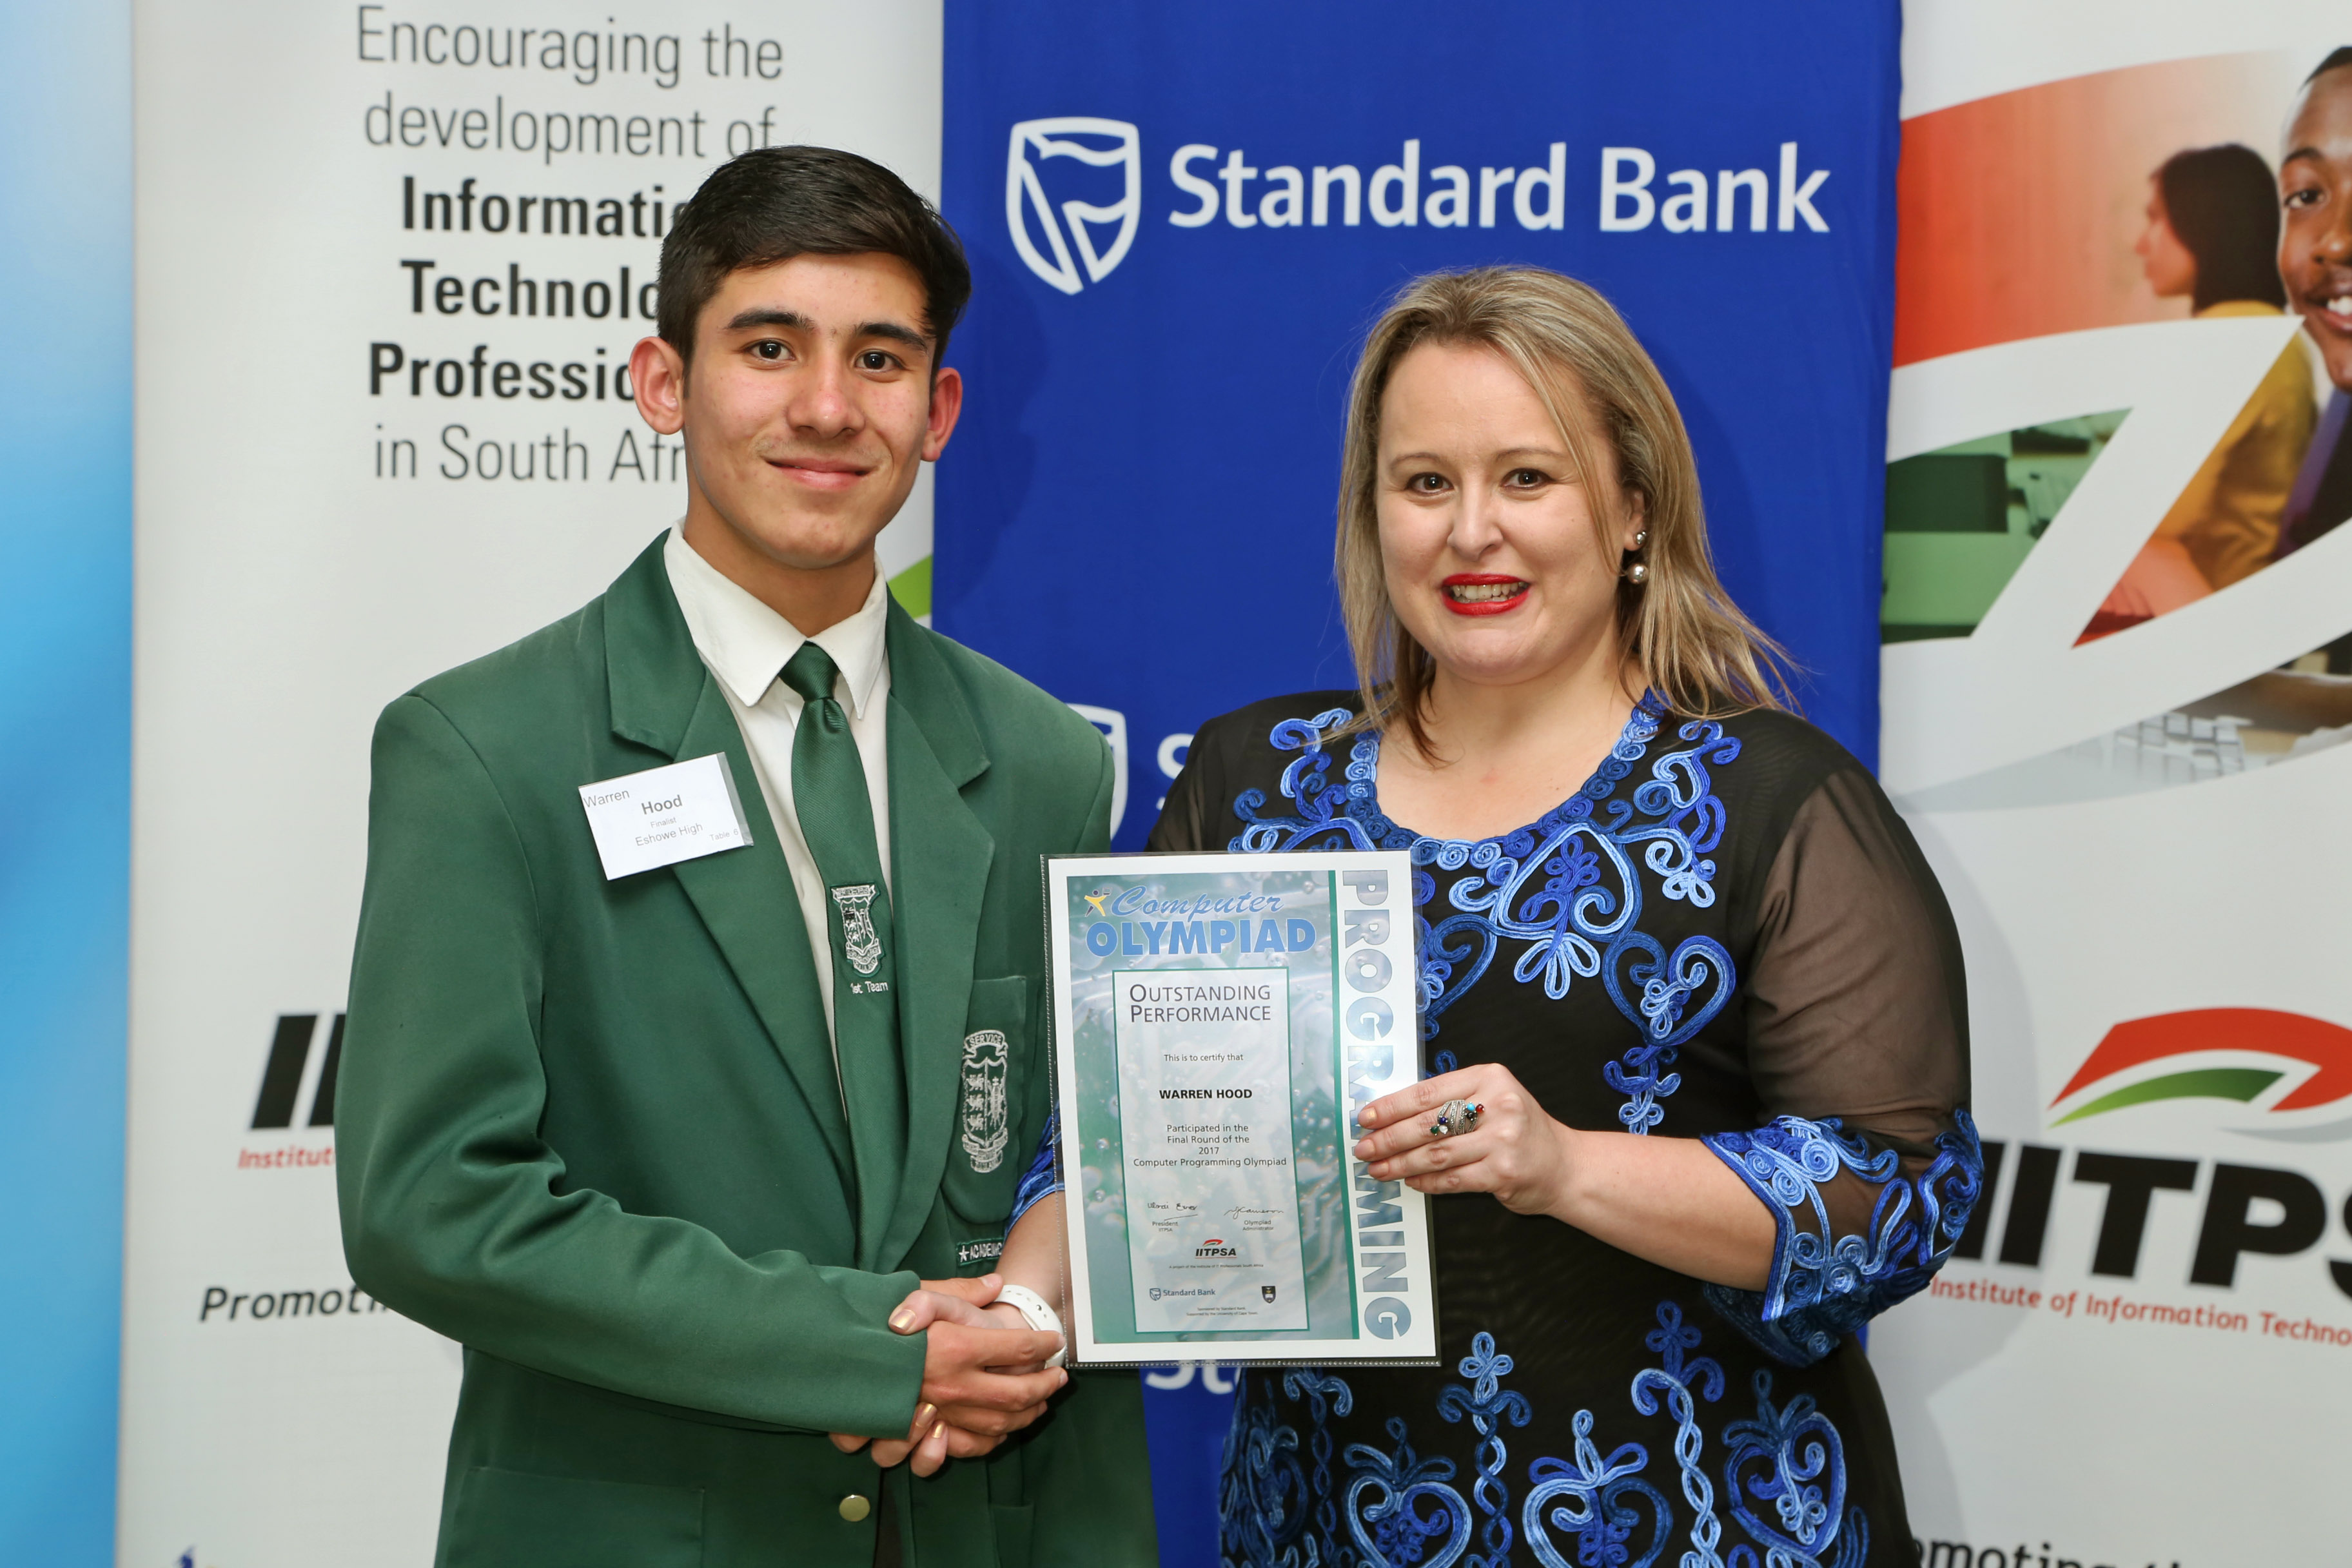 2017 PO Finalist Warren Hood (Eshowe High) receiving certificate from Ulandi Exner (IITPSA President) IMG_6352